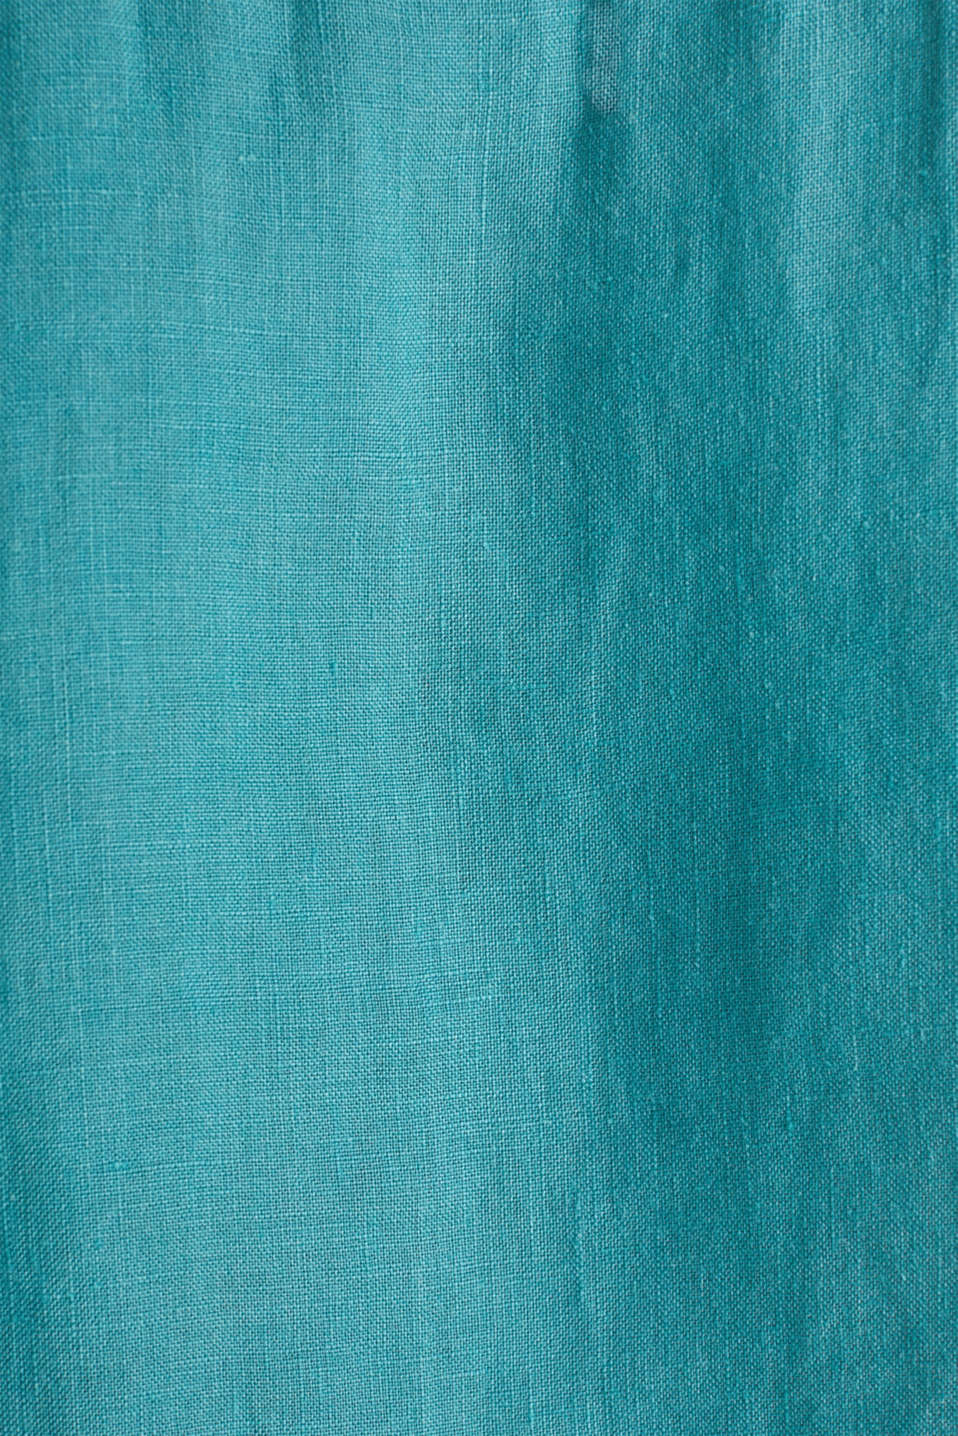 Button-down shirt made of 100% linen, TEAL GREEN, detail image number 4